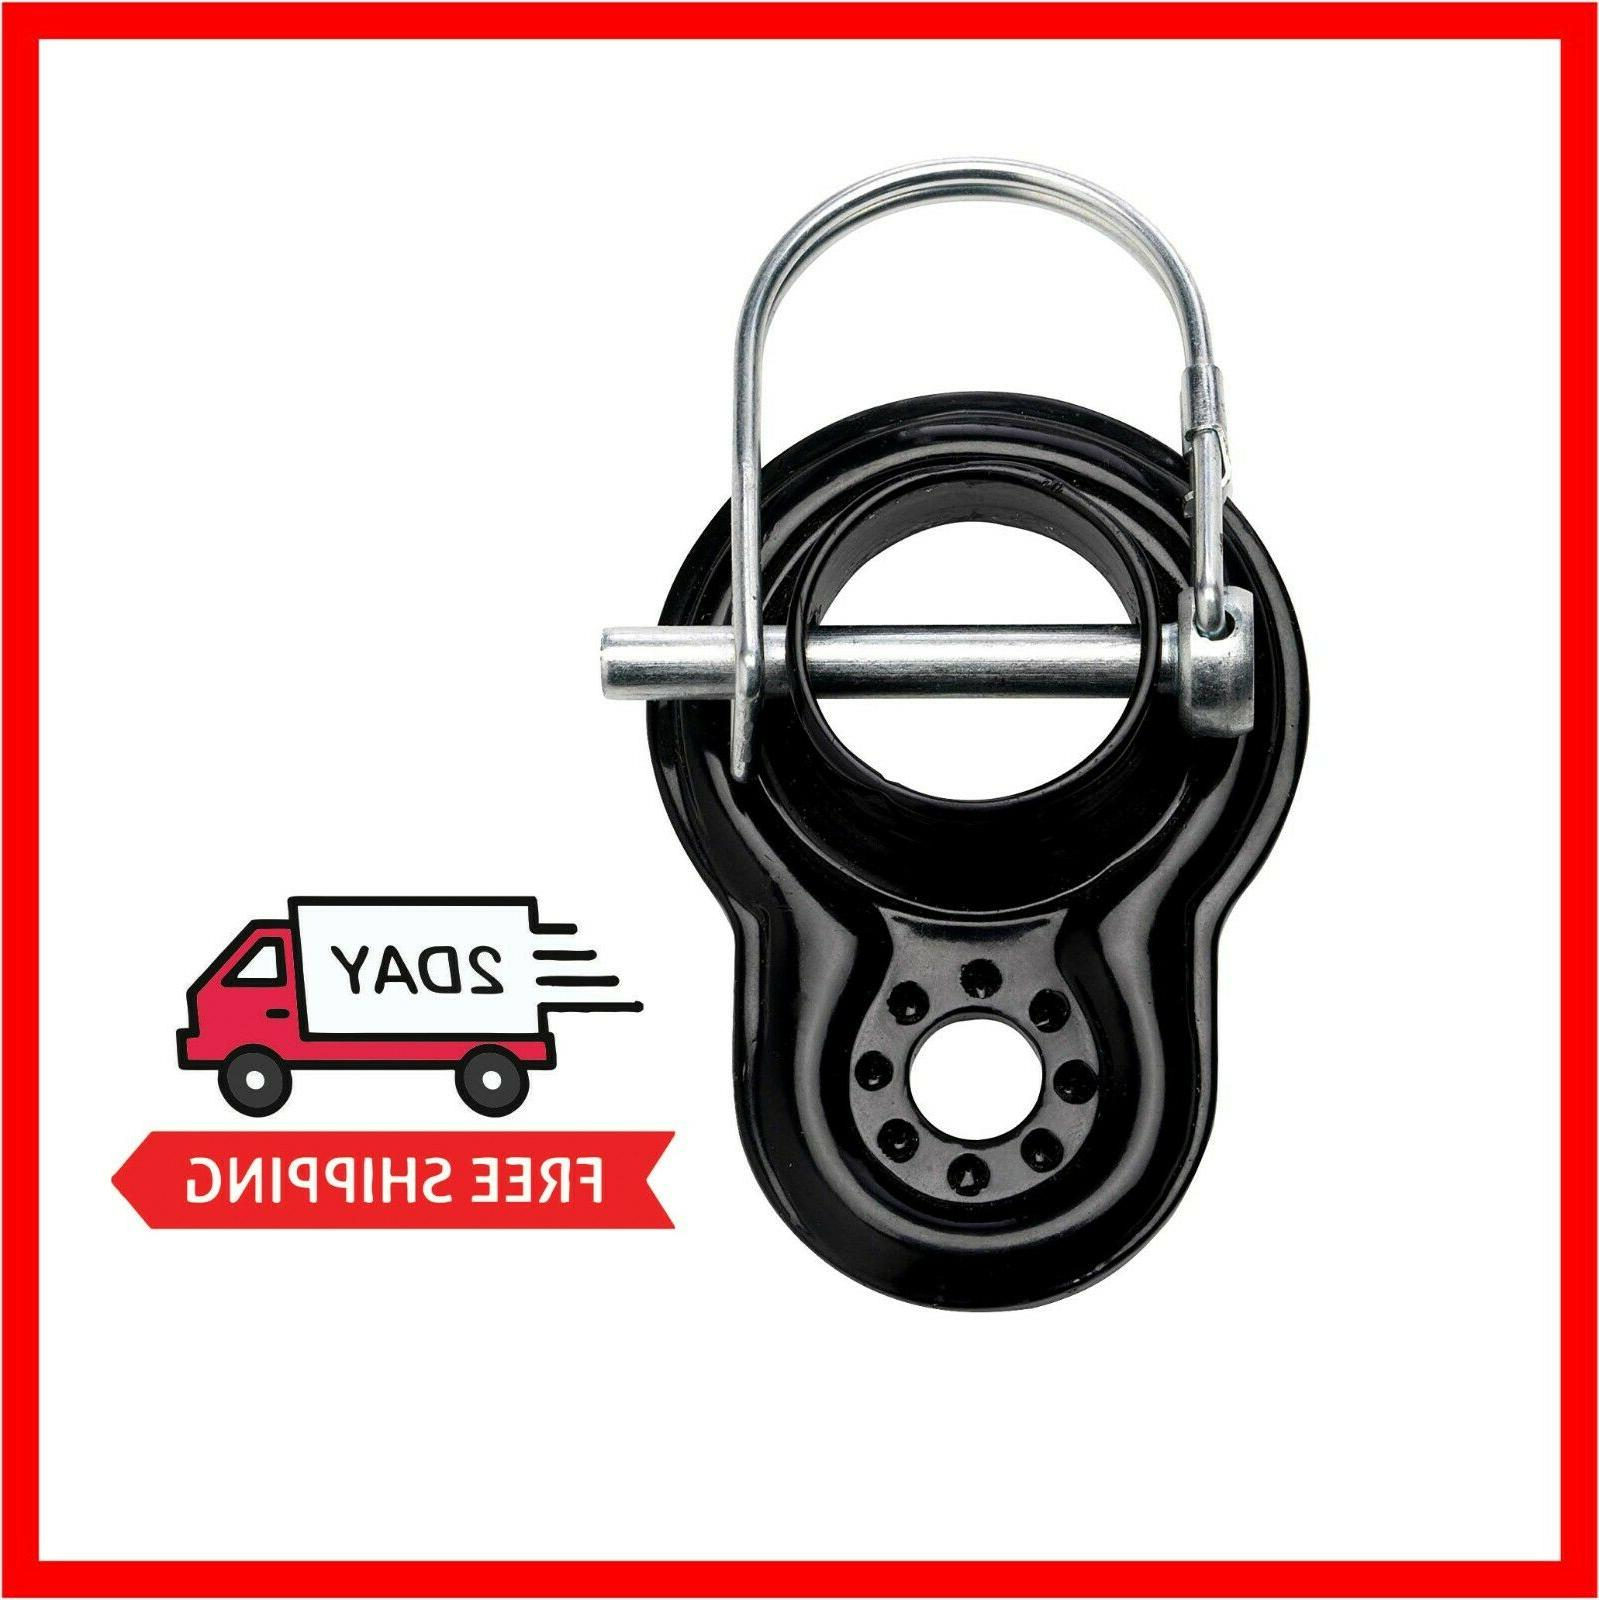 instep bike trailer coupling hitch bicycle jogging